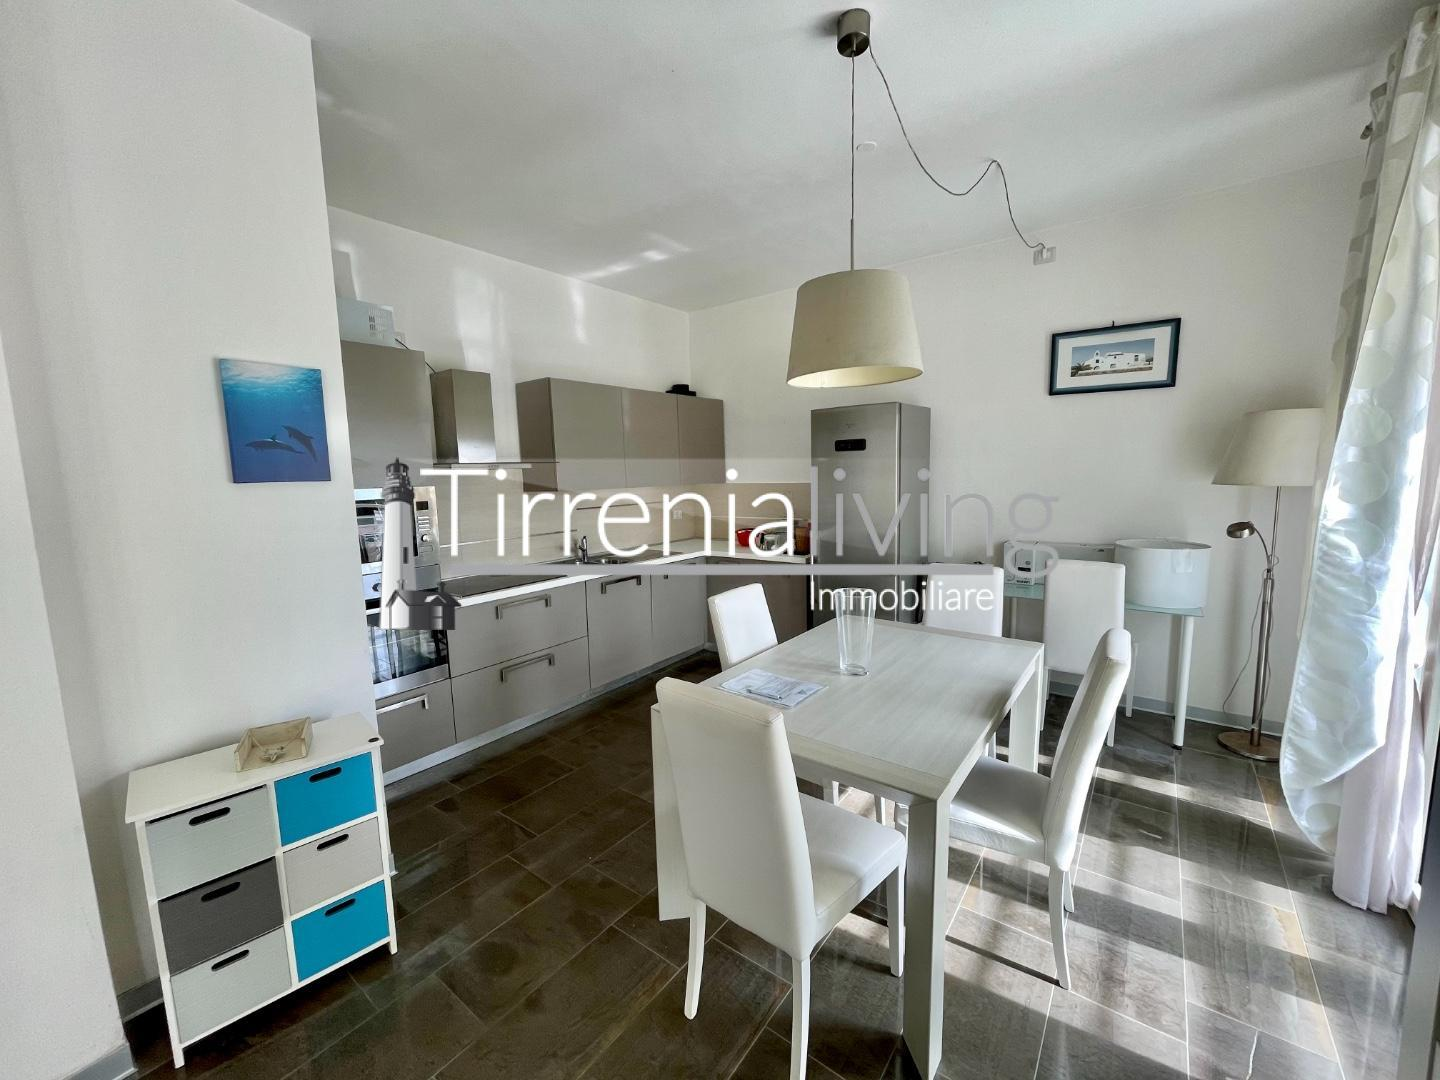 Apartment for holiday rentals in Pisa